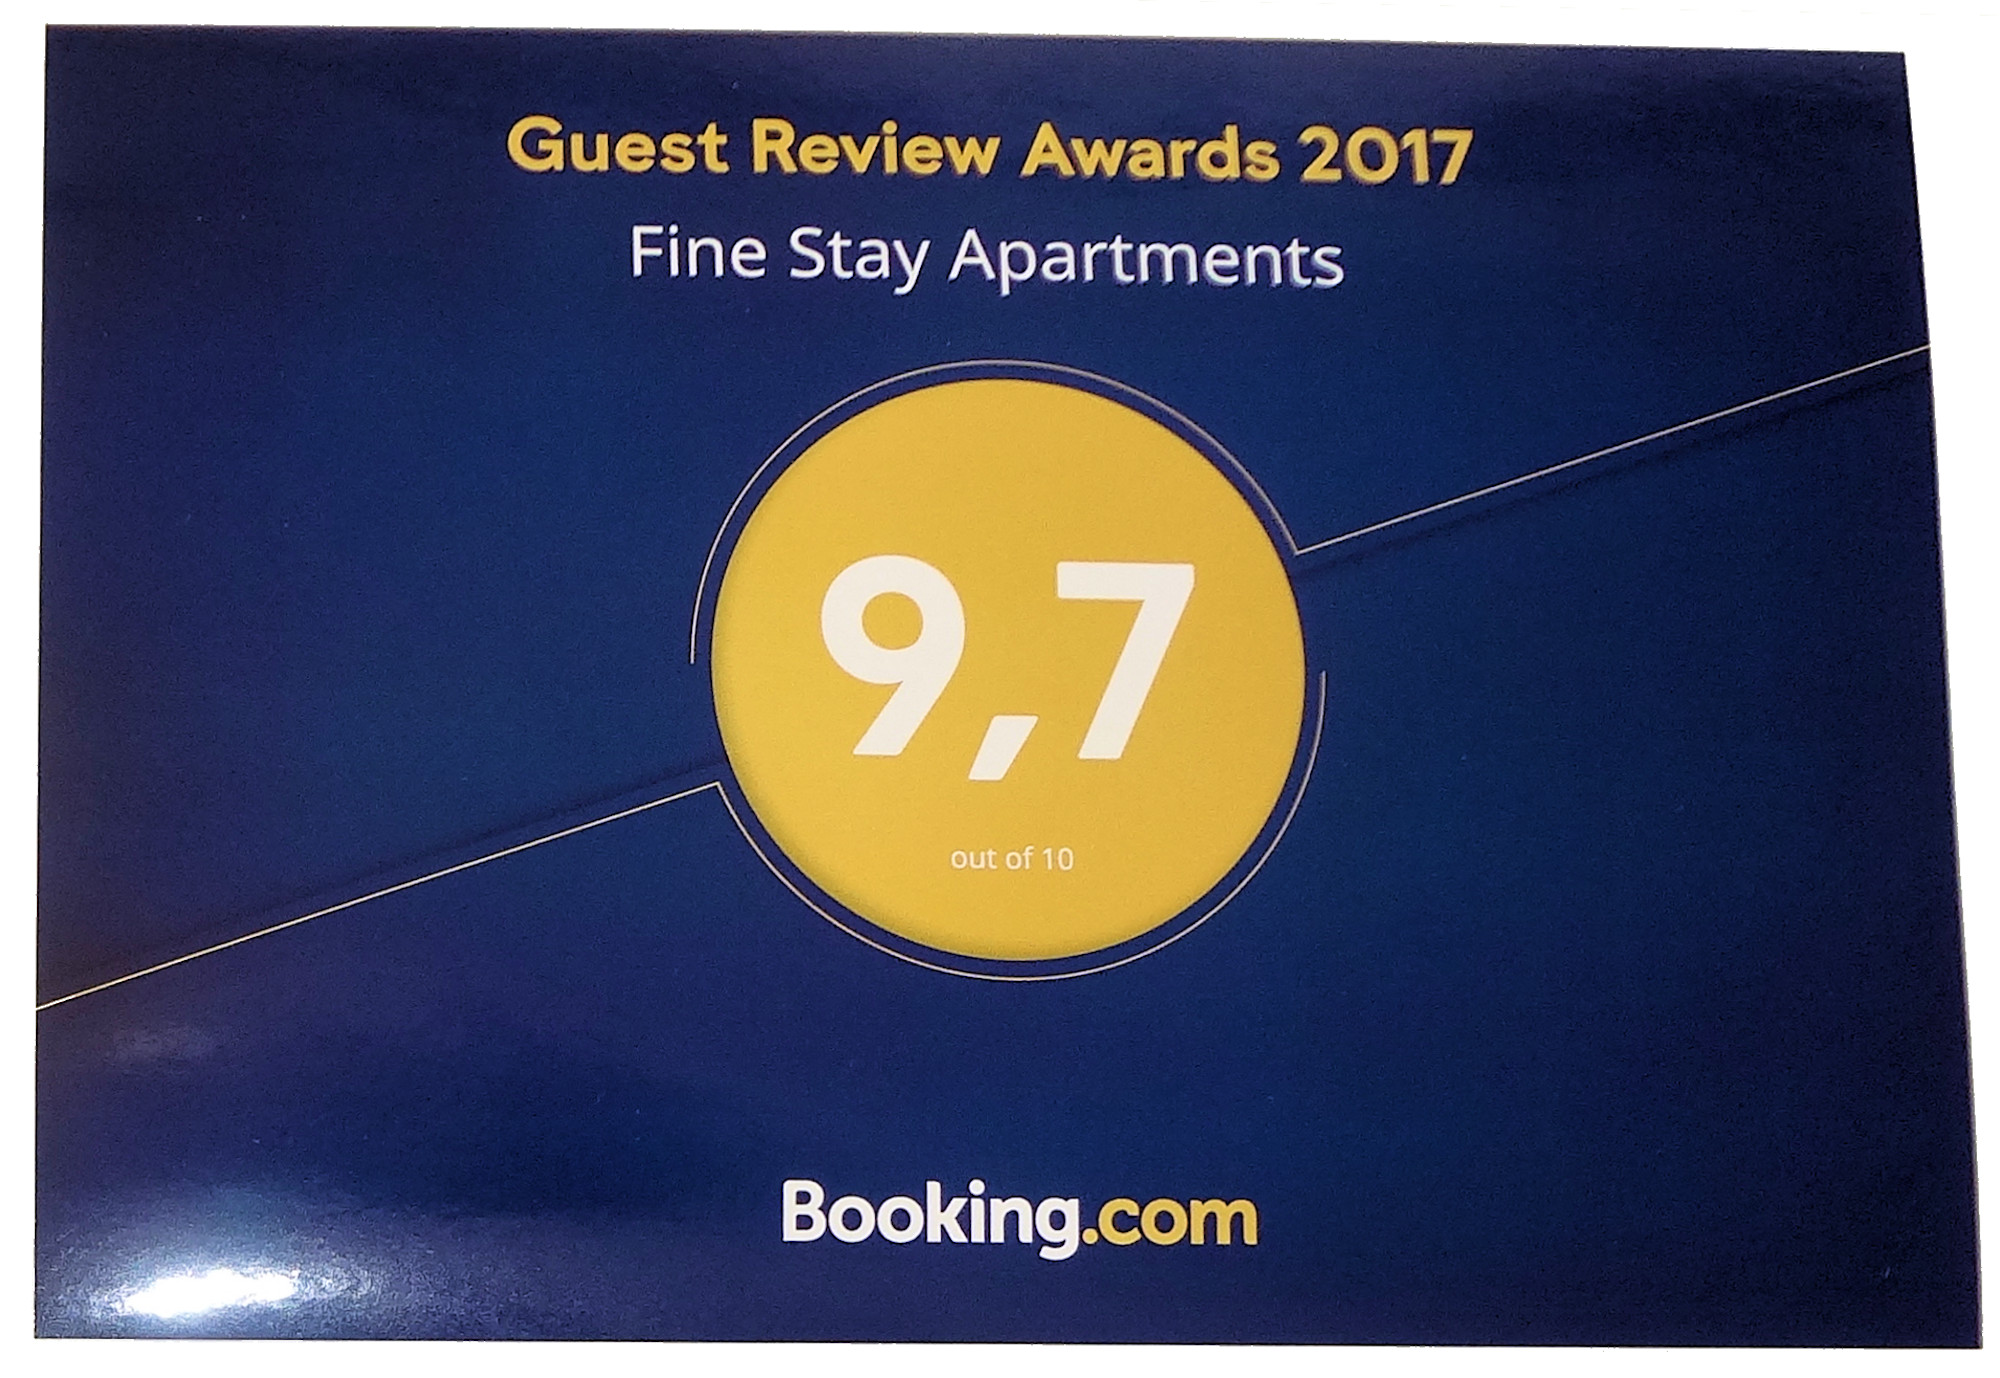 Booking Accommodations Coupon Code Booking.Com